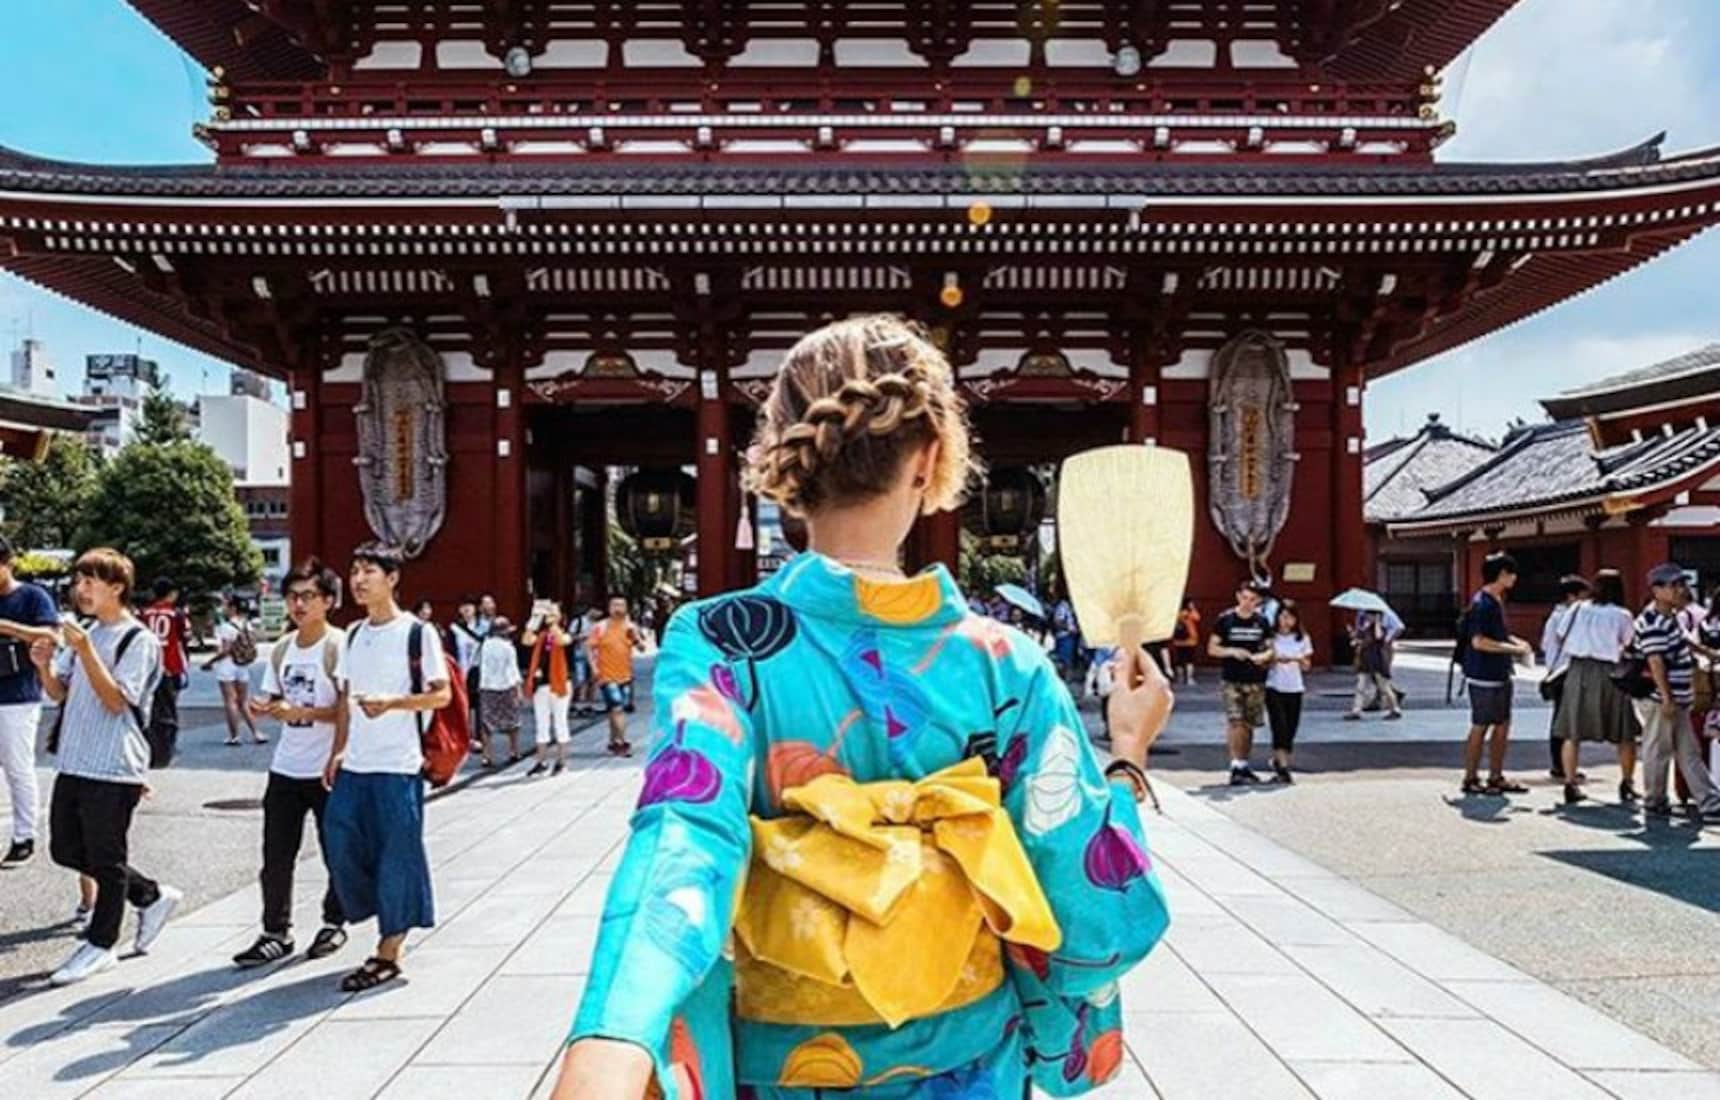 #Followmeto Couple Capture the Beauty of Japan